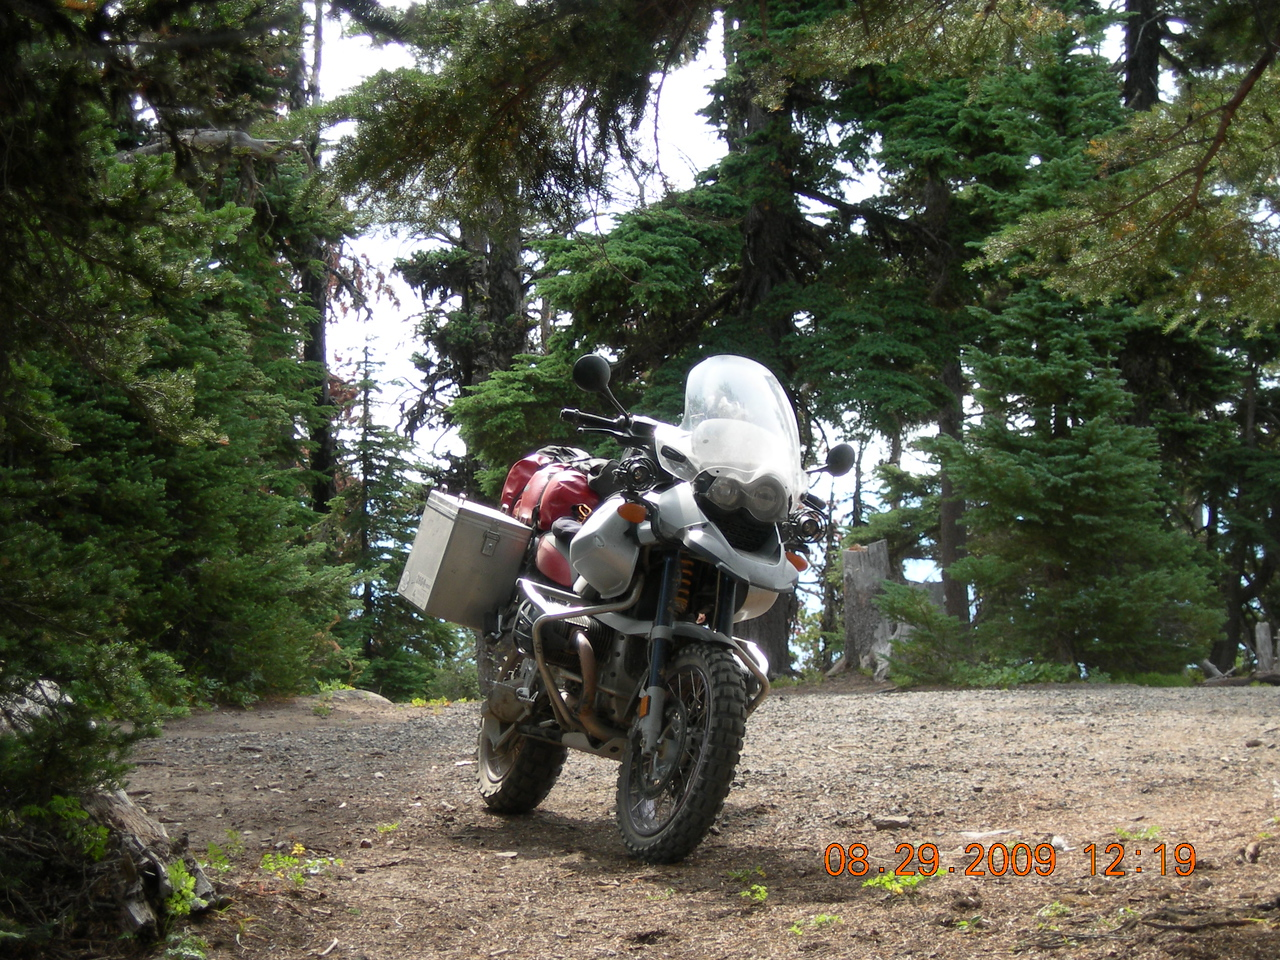 The big GS looking for a Sasquatch.